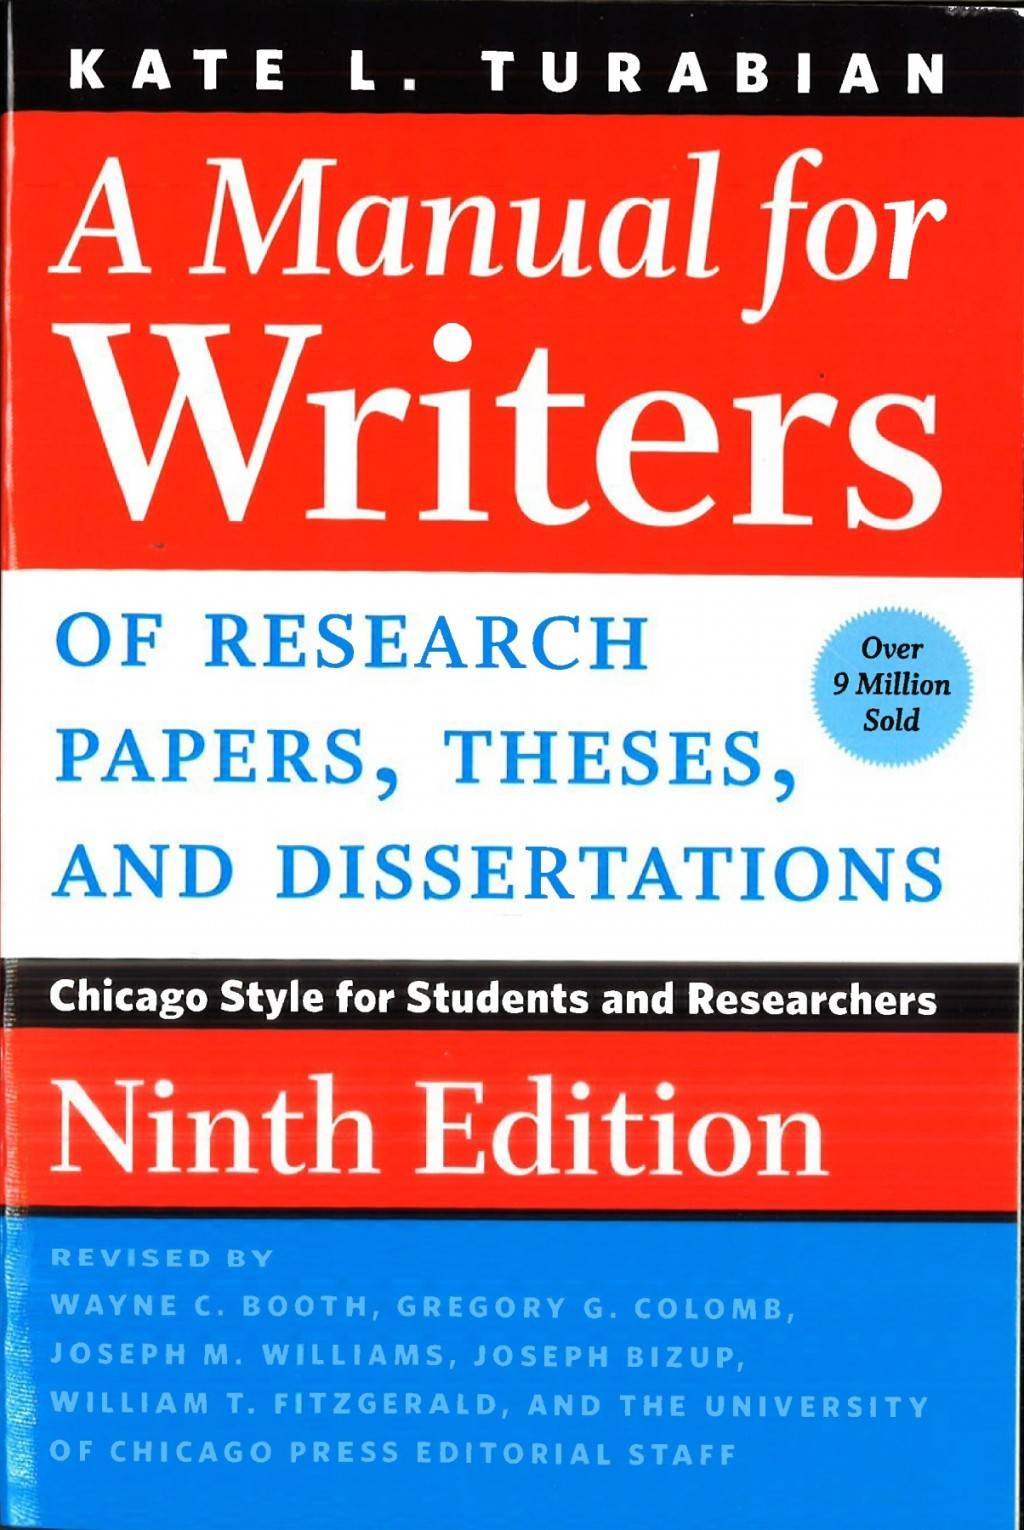 008 Research Paper Manual For Writers Of Papers Theses And Sensational A Dissertations Ed. 8 Turabian Ninth Edition Large